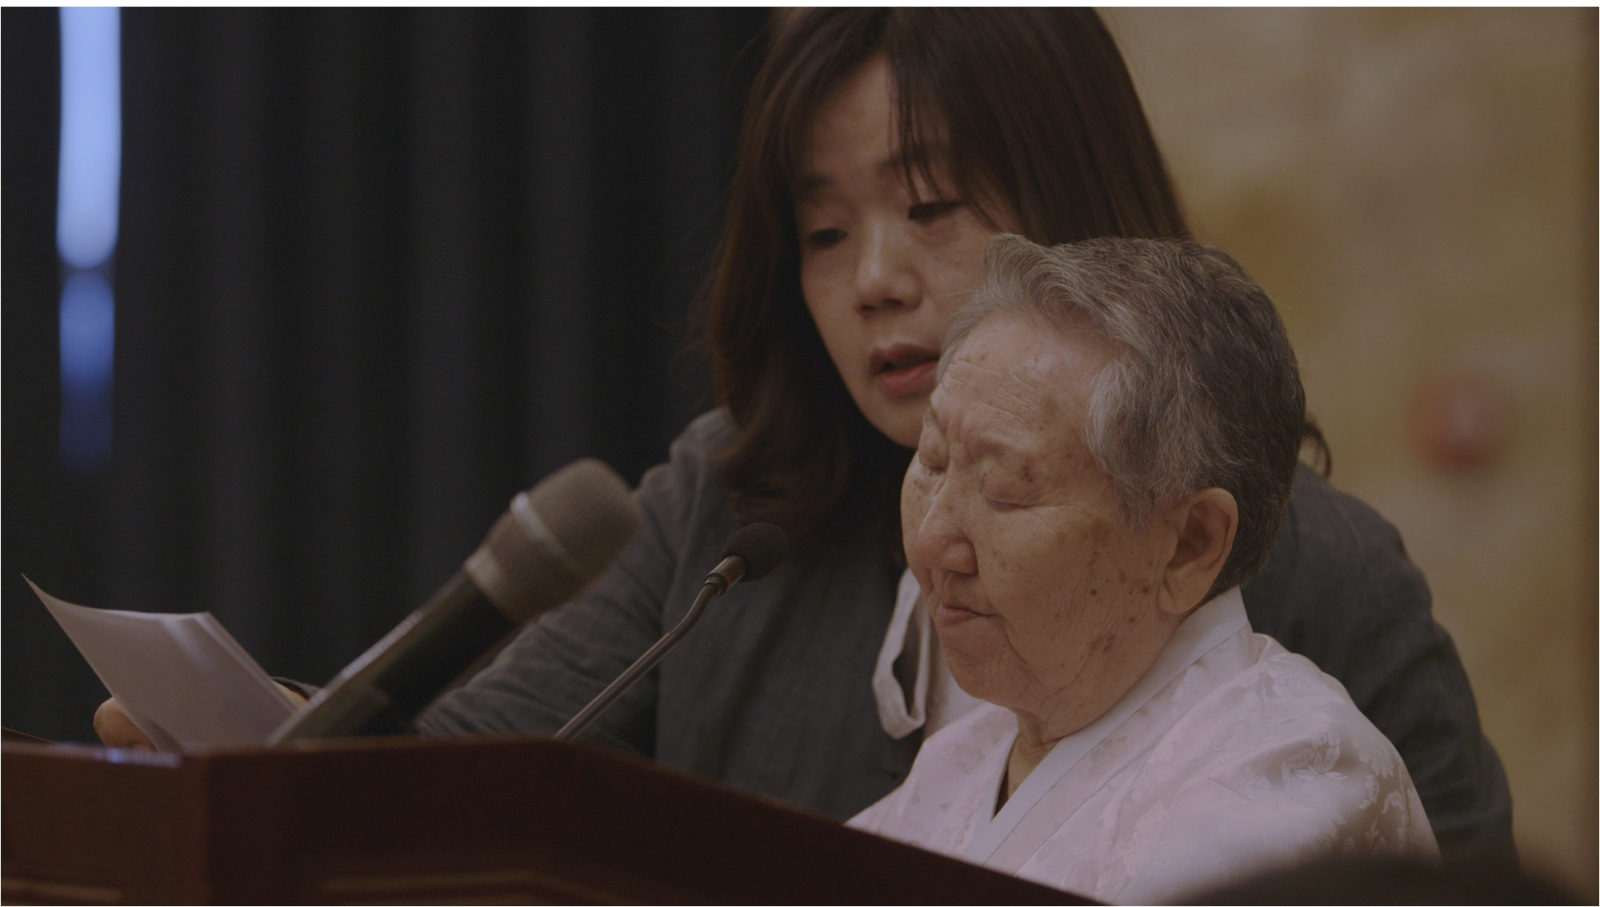 First-hand testimony from 'comfort women' who were raped by Japanese soldiers in World War Two